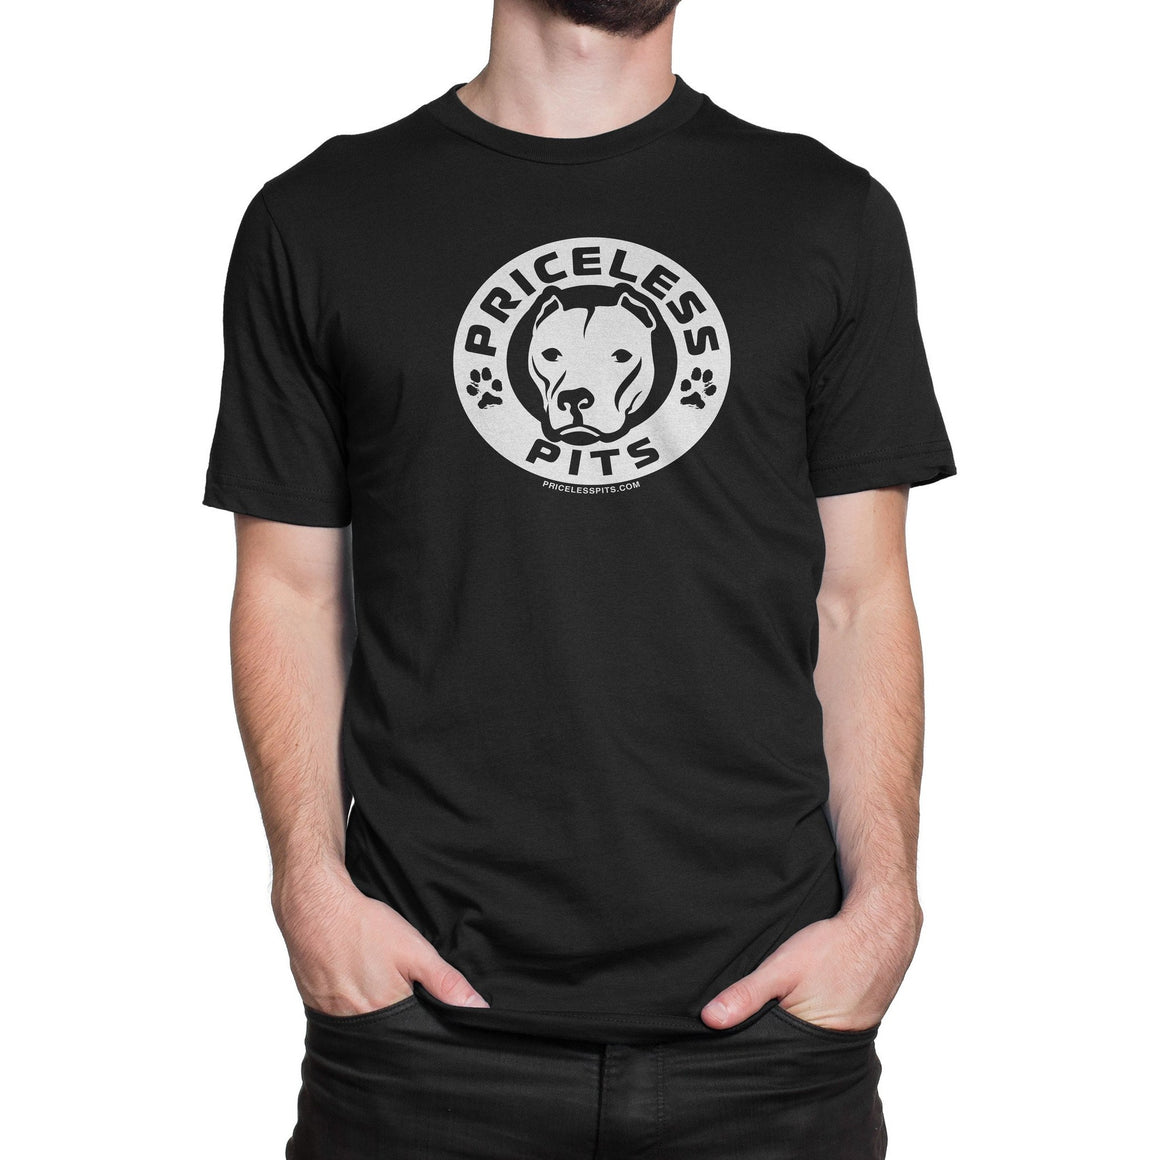 Priceless Pits Logo Black Pitbull Shirt